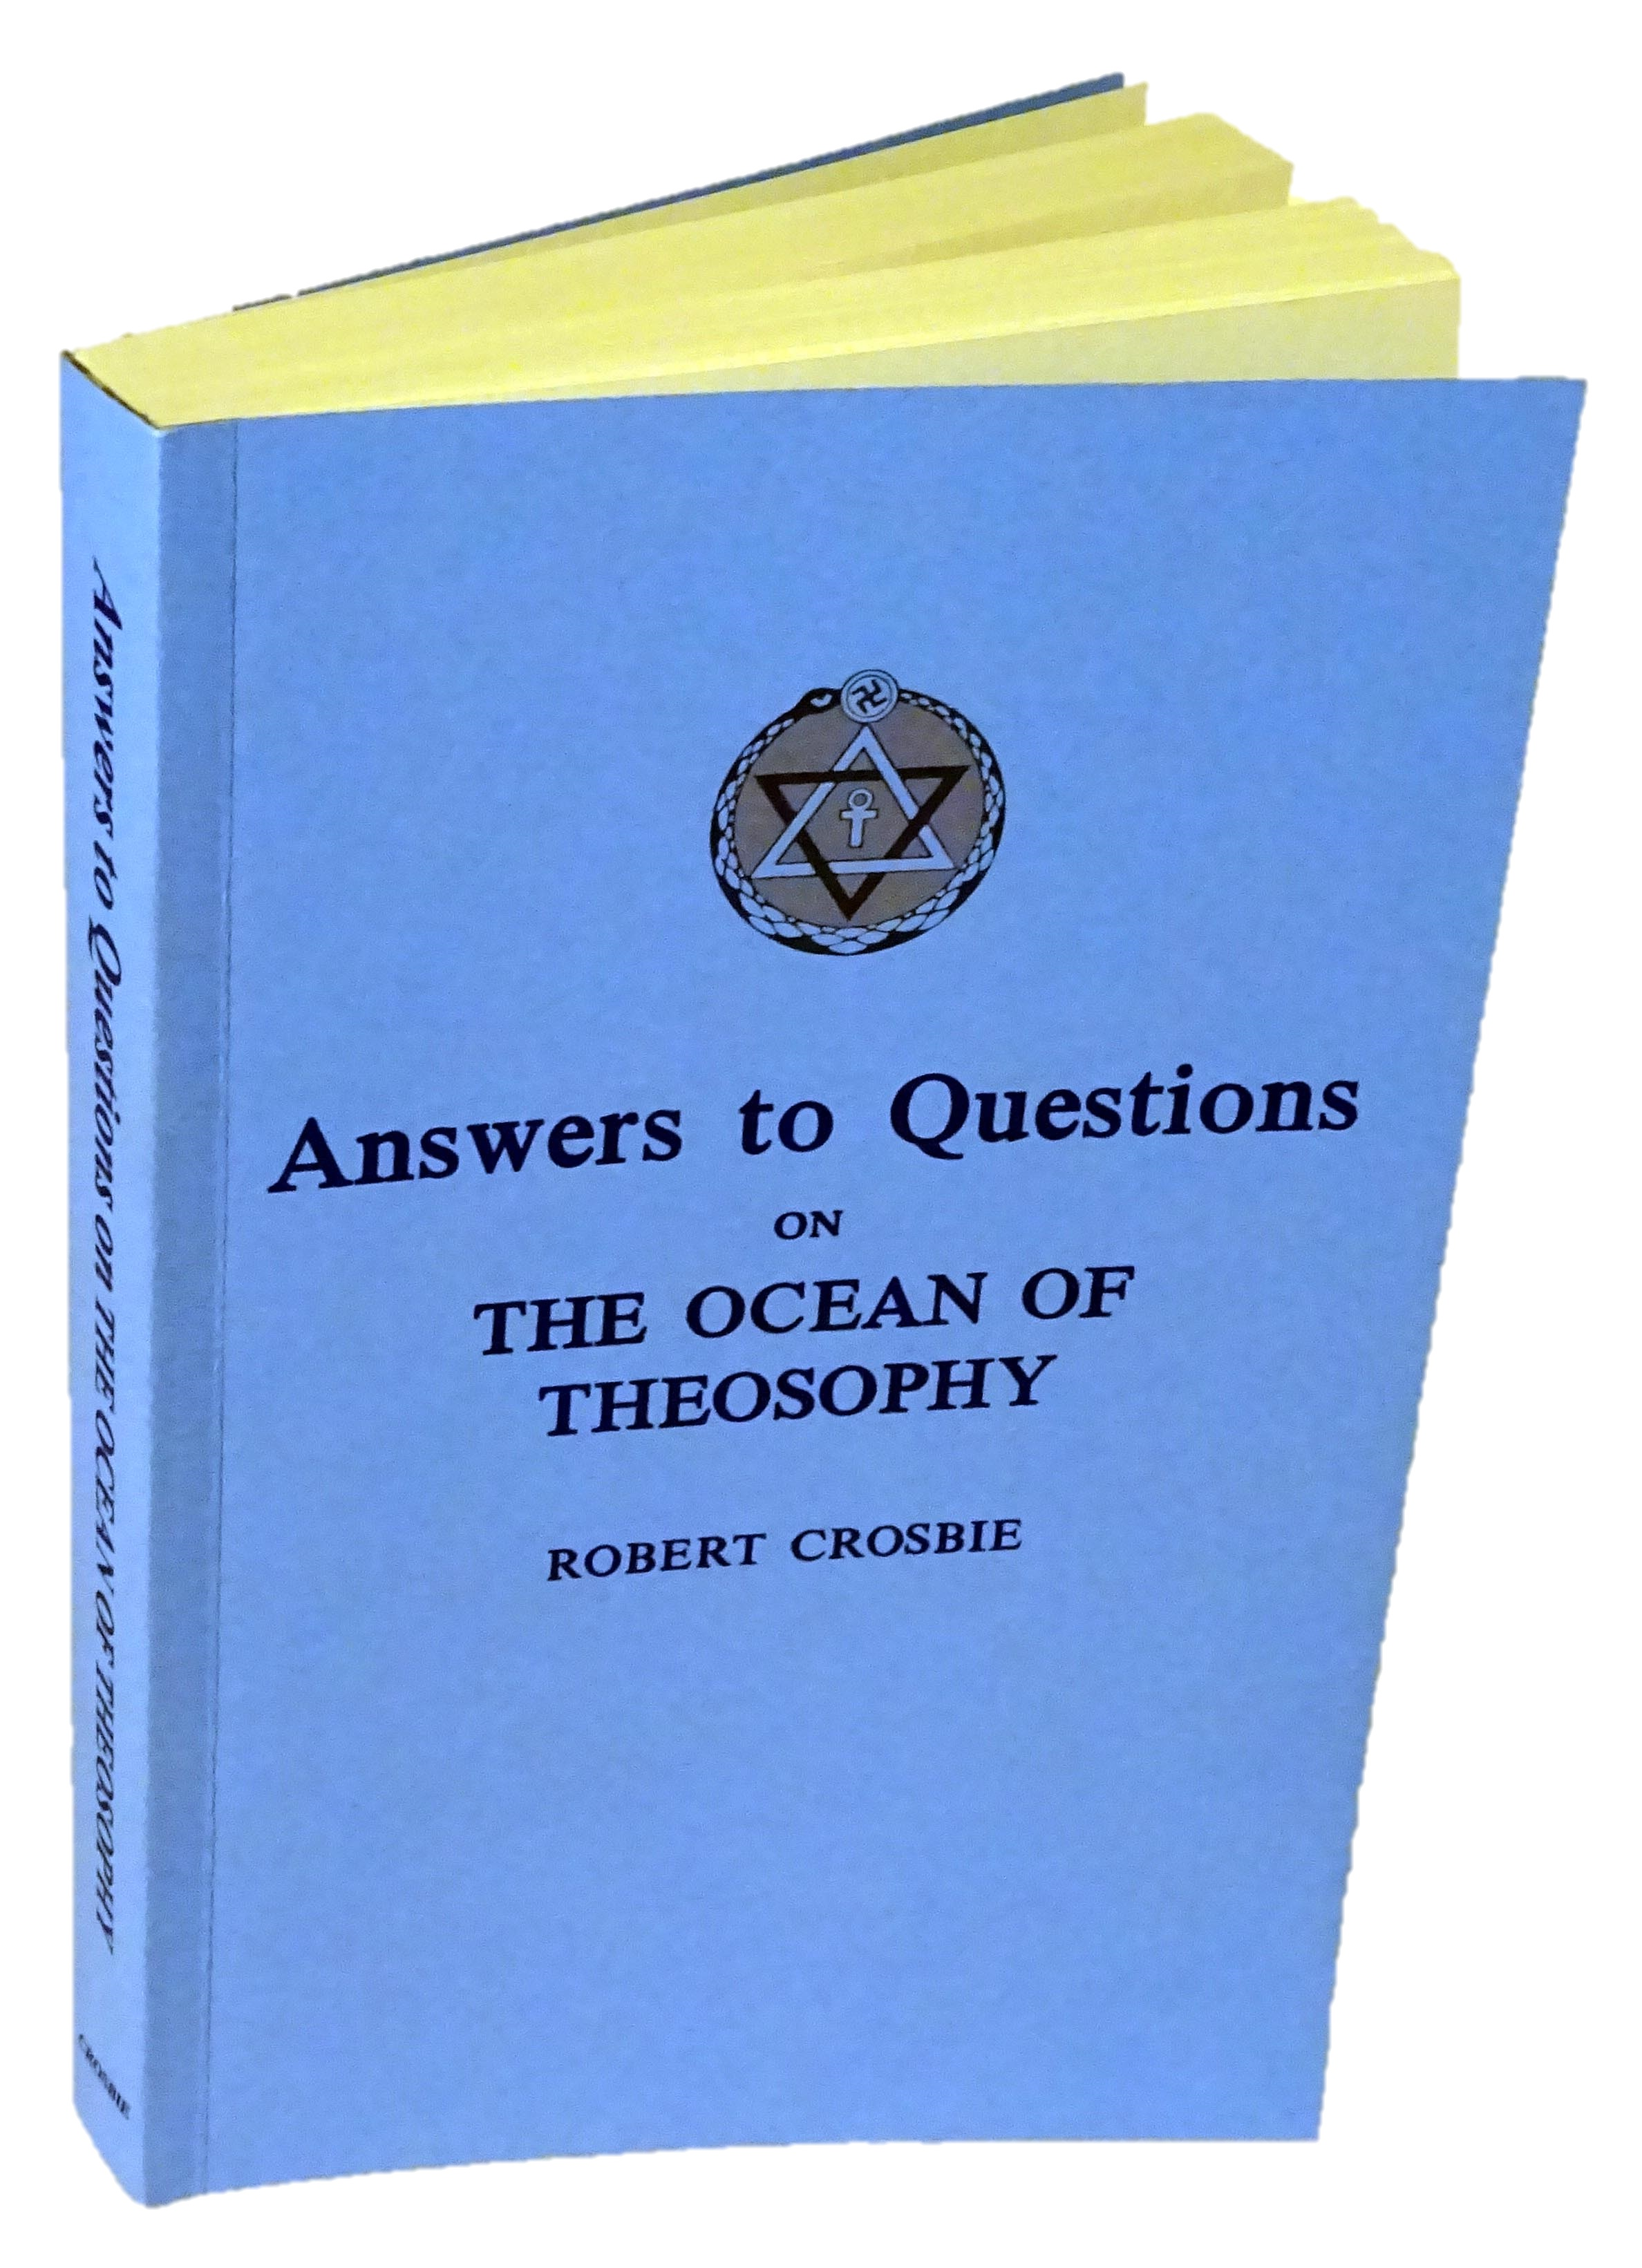 Answers to Questions on the Ocean of Theosophy